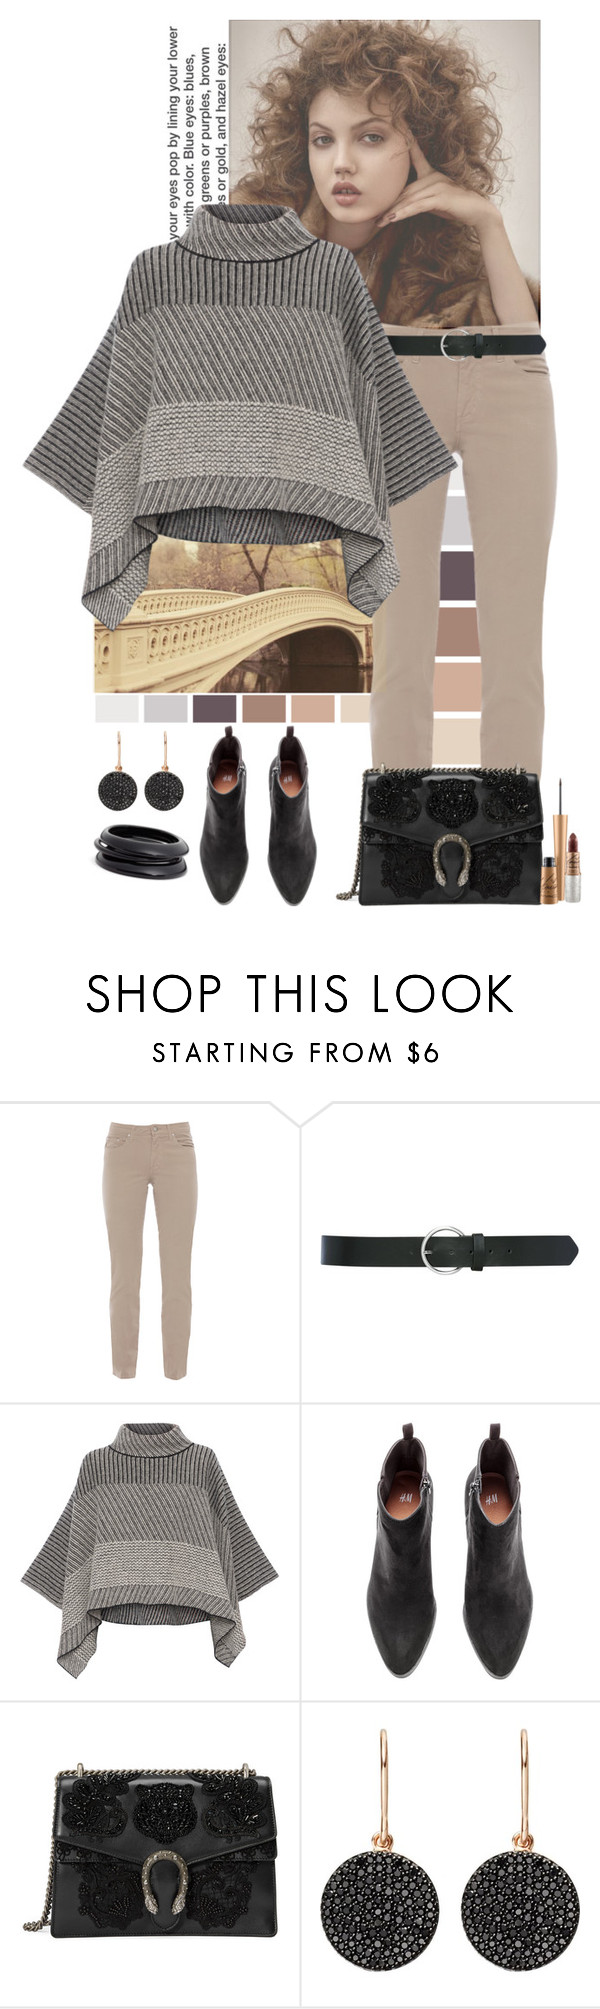 """Over  the Bridge"" by akflow ❤ liked on Polyvore featuring Fabrizio Gianni, M&Co, Piazza Sempione, Gucci, Mariah Carey, Astley Clarke and ZENZii"